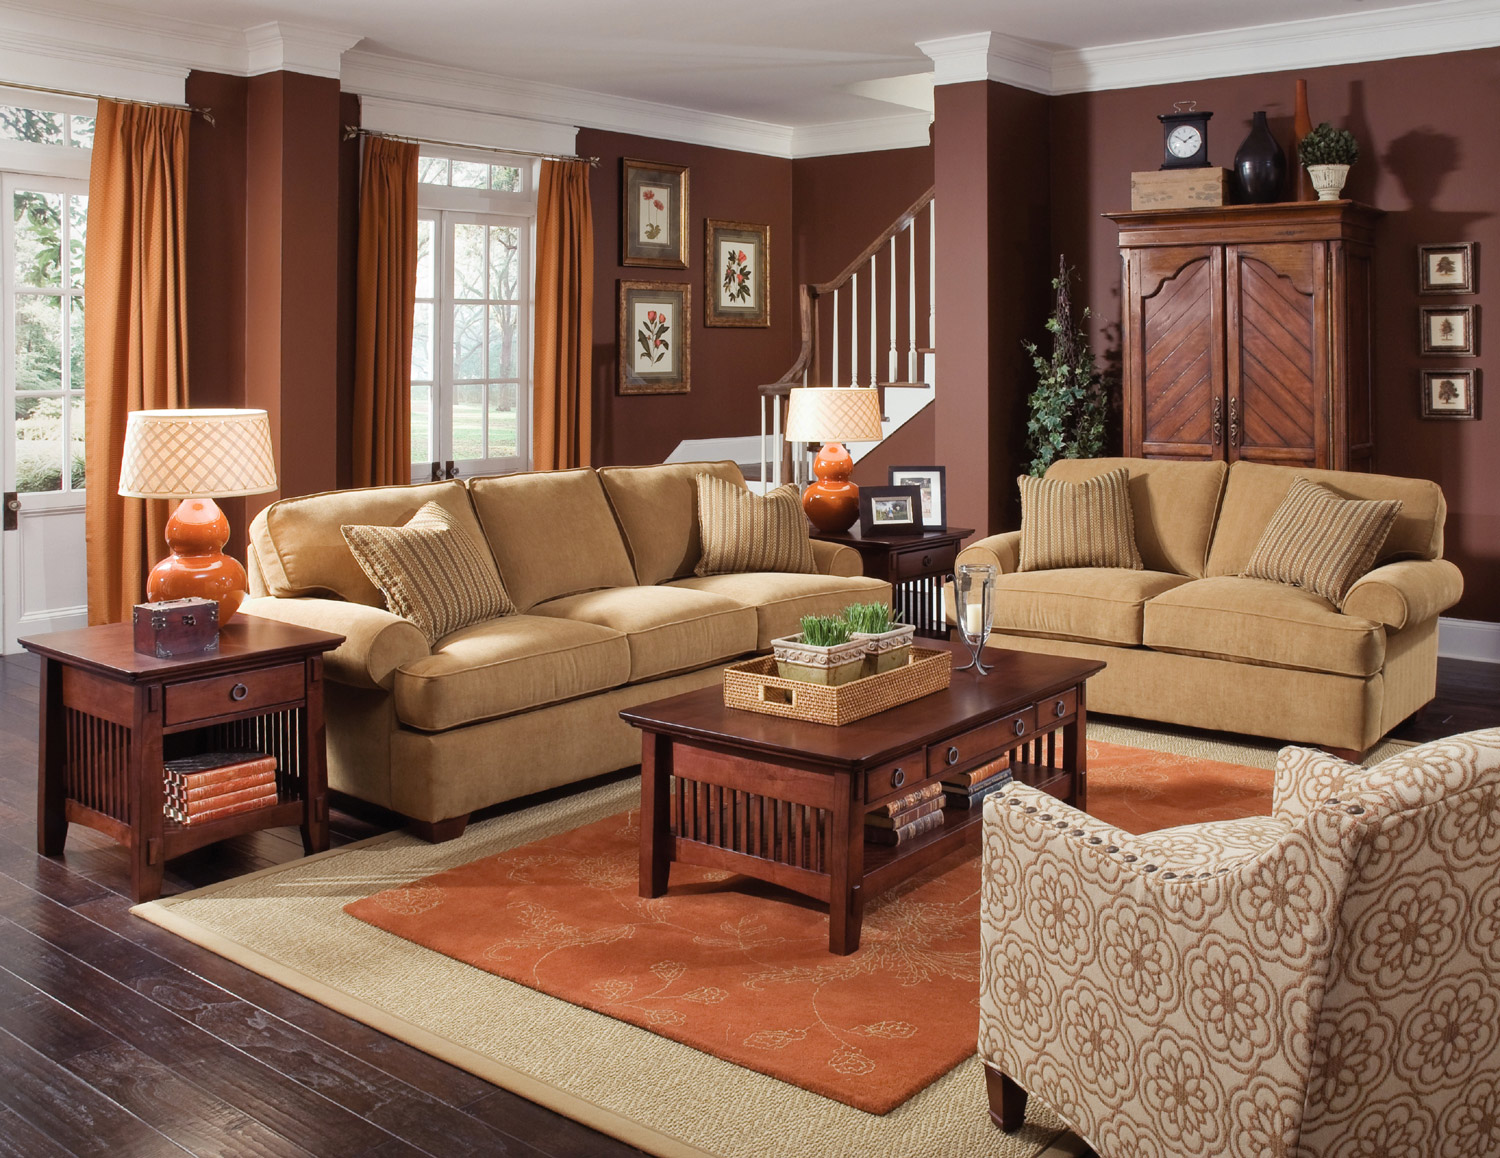 Attirant Cabin Sofa | Rowe Furniture | Home Gallery Stores